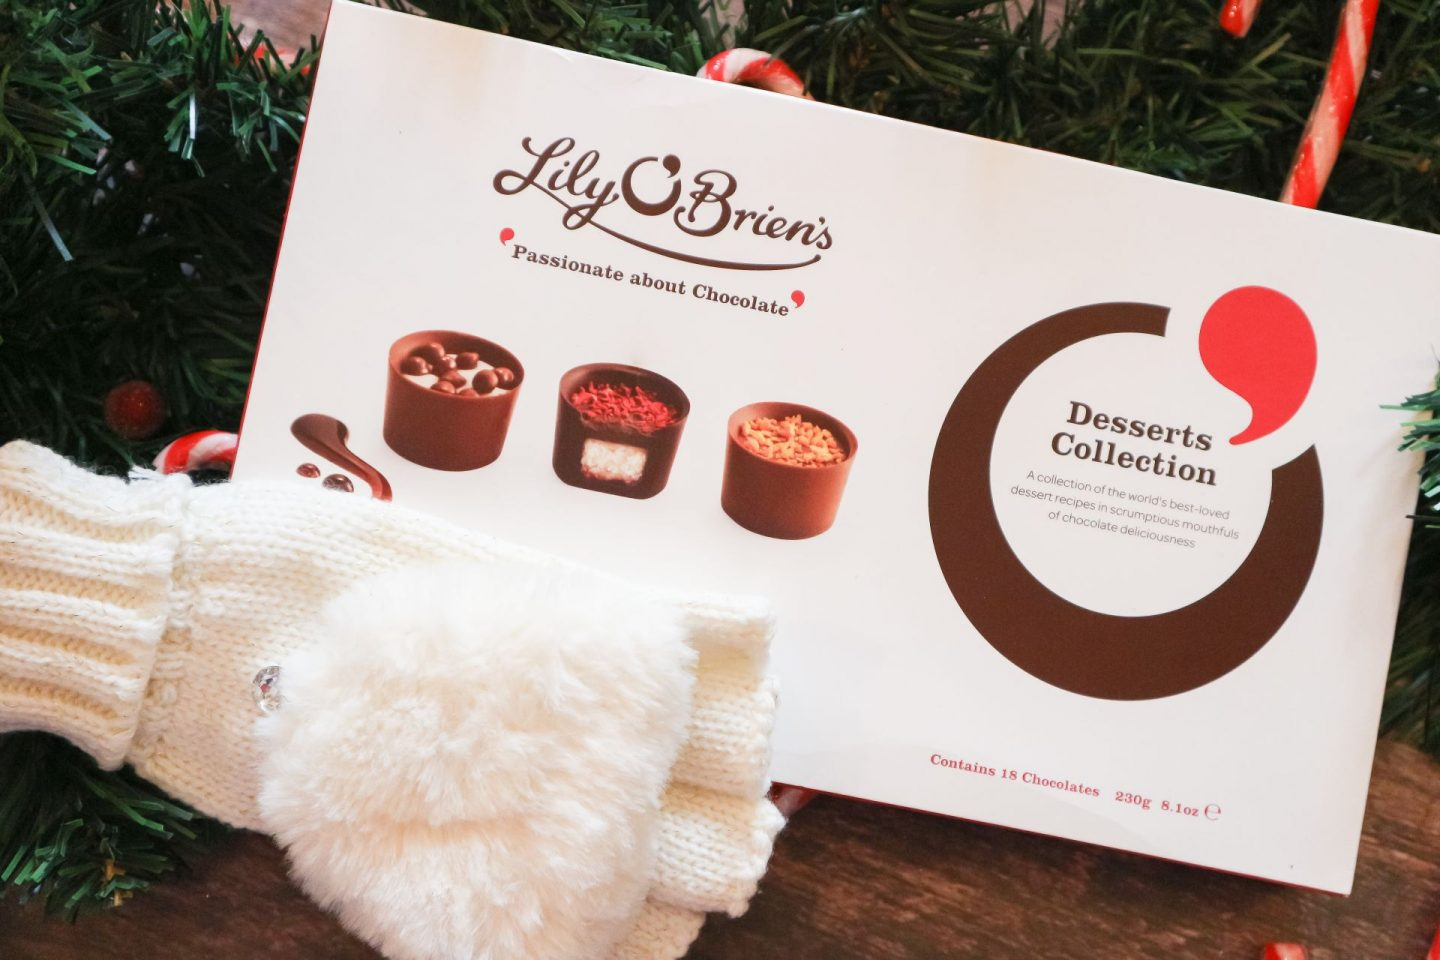 Lily O'Brien's Desserts Collection